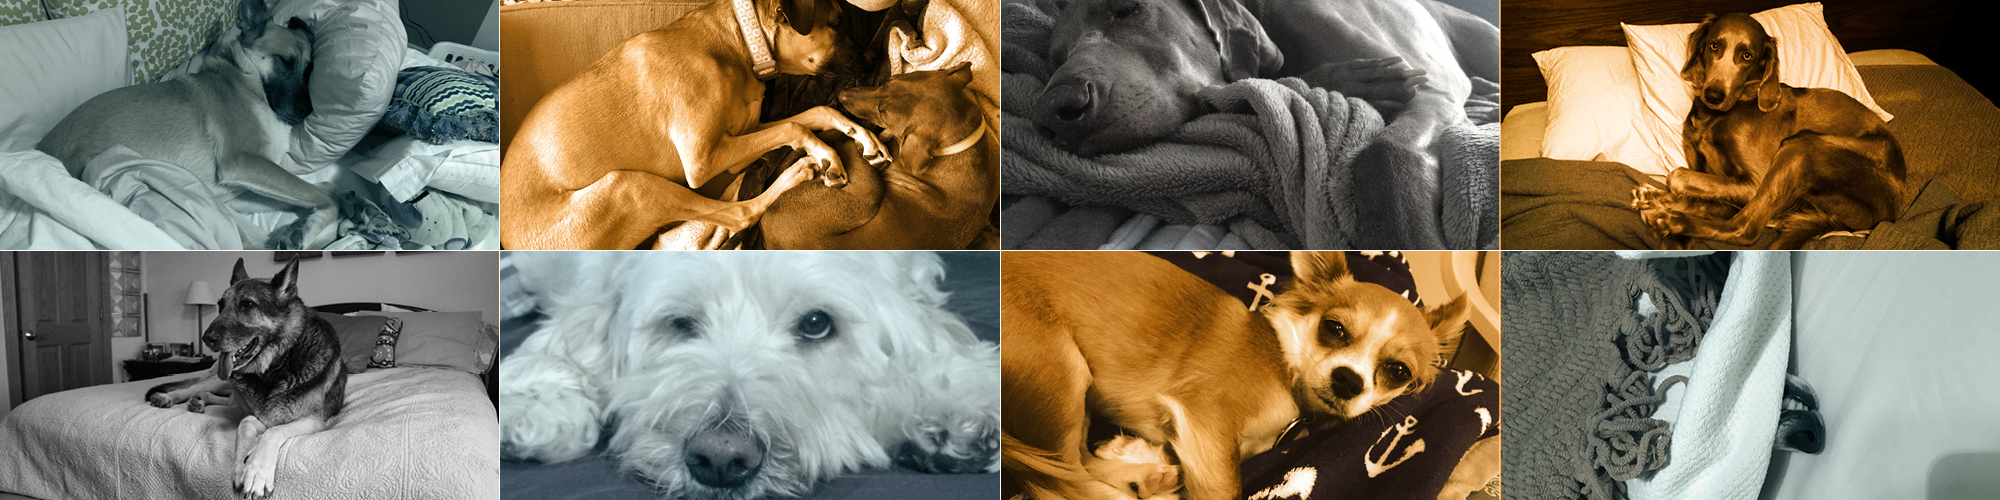 collage fo dogs